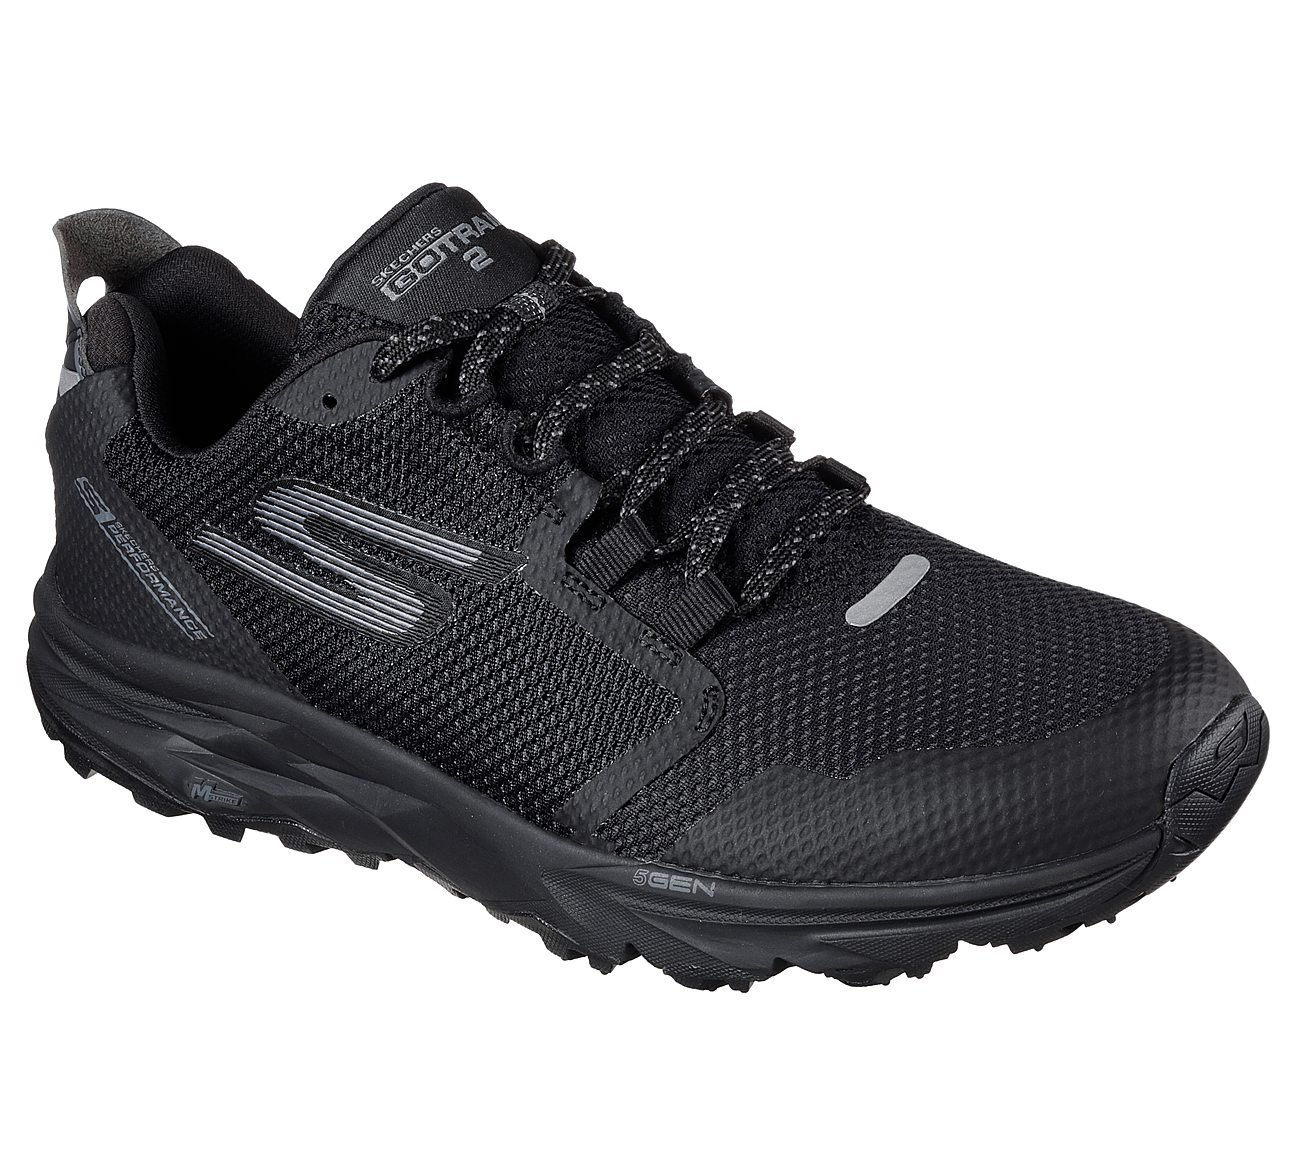 Skechers Skechers Shoes Saleup To 65% DiscountsDiscounts